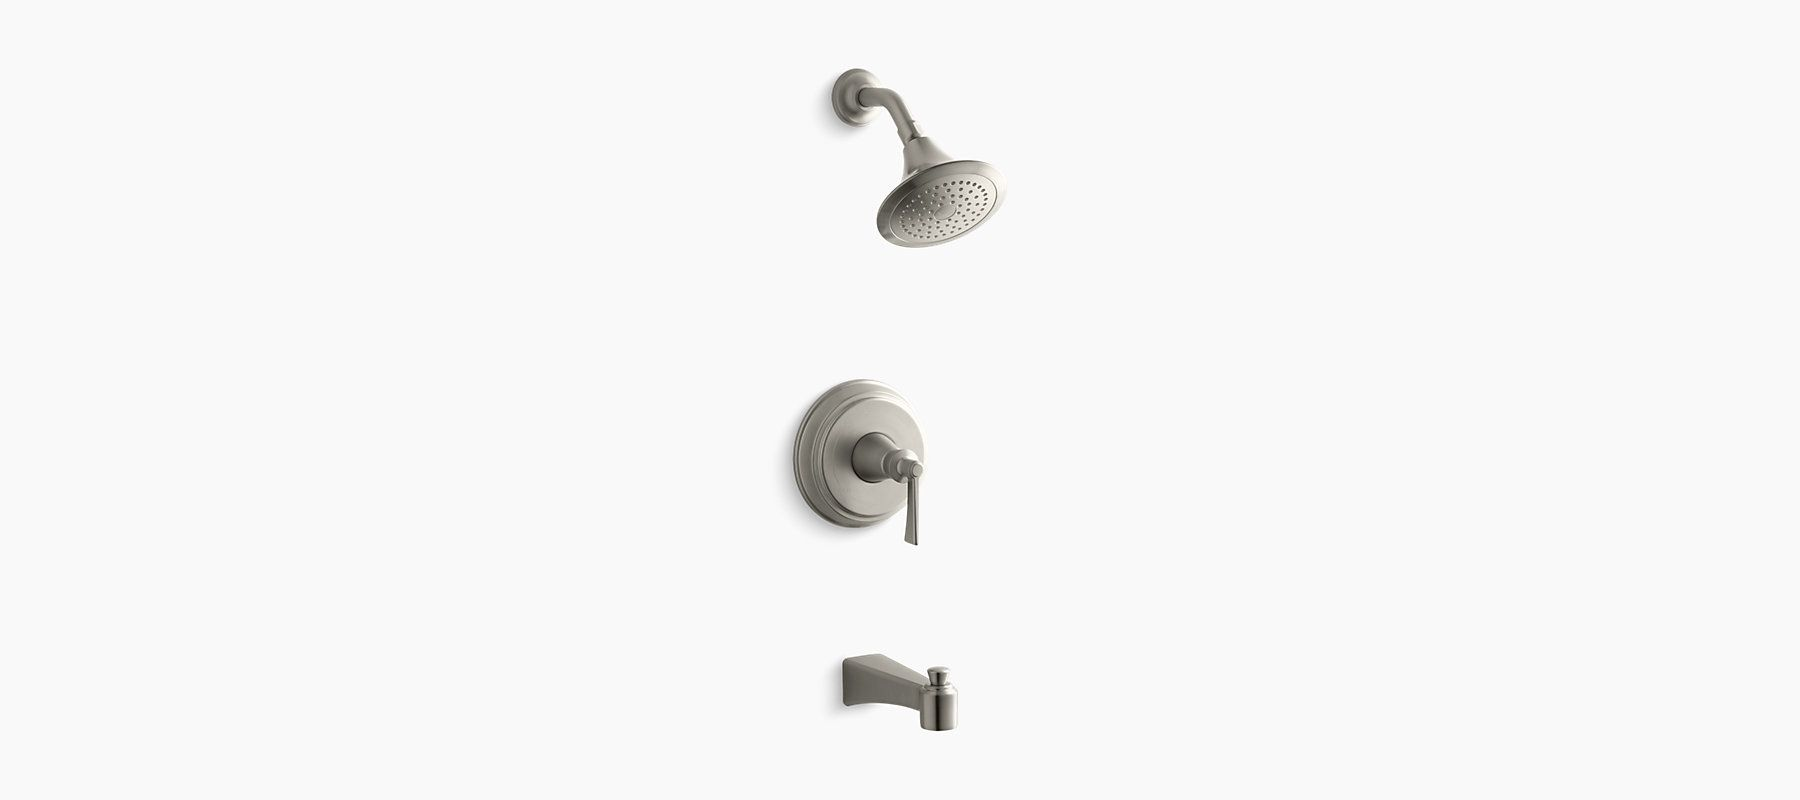 Install On Shower Arm Archer Rite Temp Bath And Shower Faucet